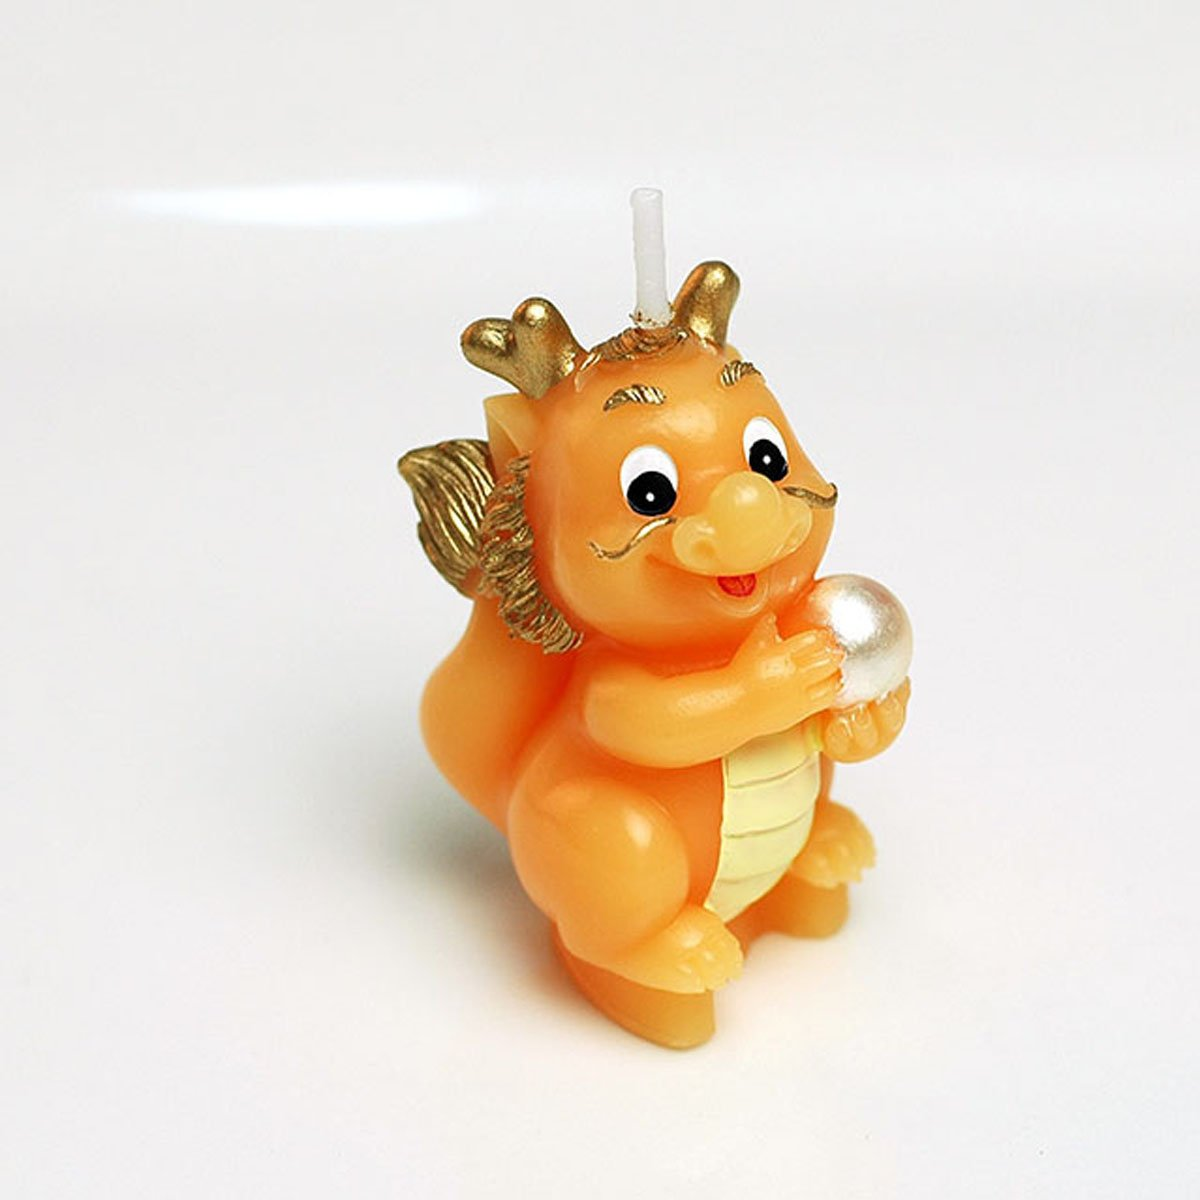 Cartoon Zodiac Dragon Charming Gifts Party Candles Smokeless Candles Birthday Candles for Baby Shower and Wedding Favor Keepsake Favor (5)